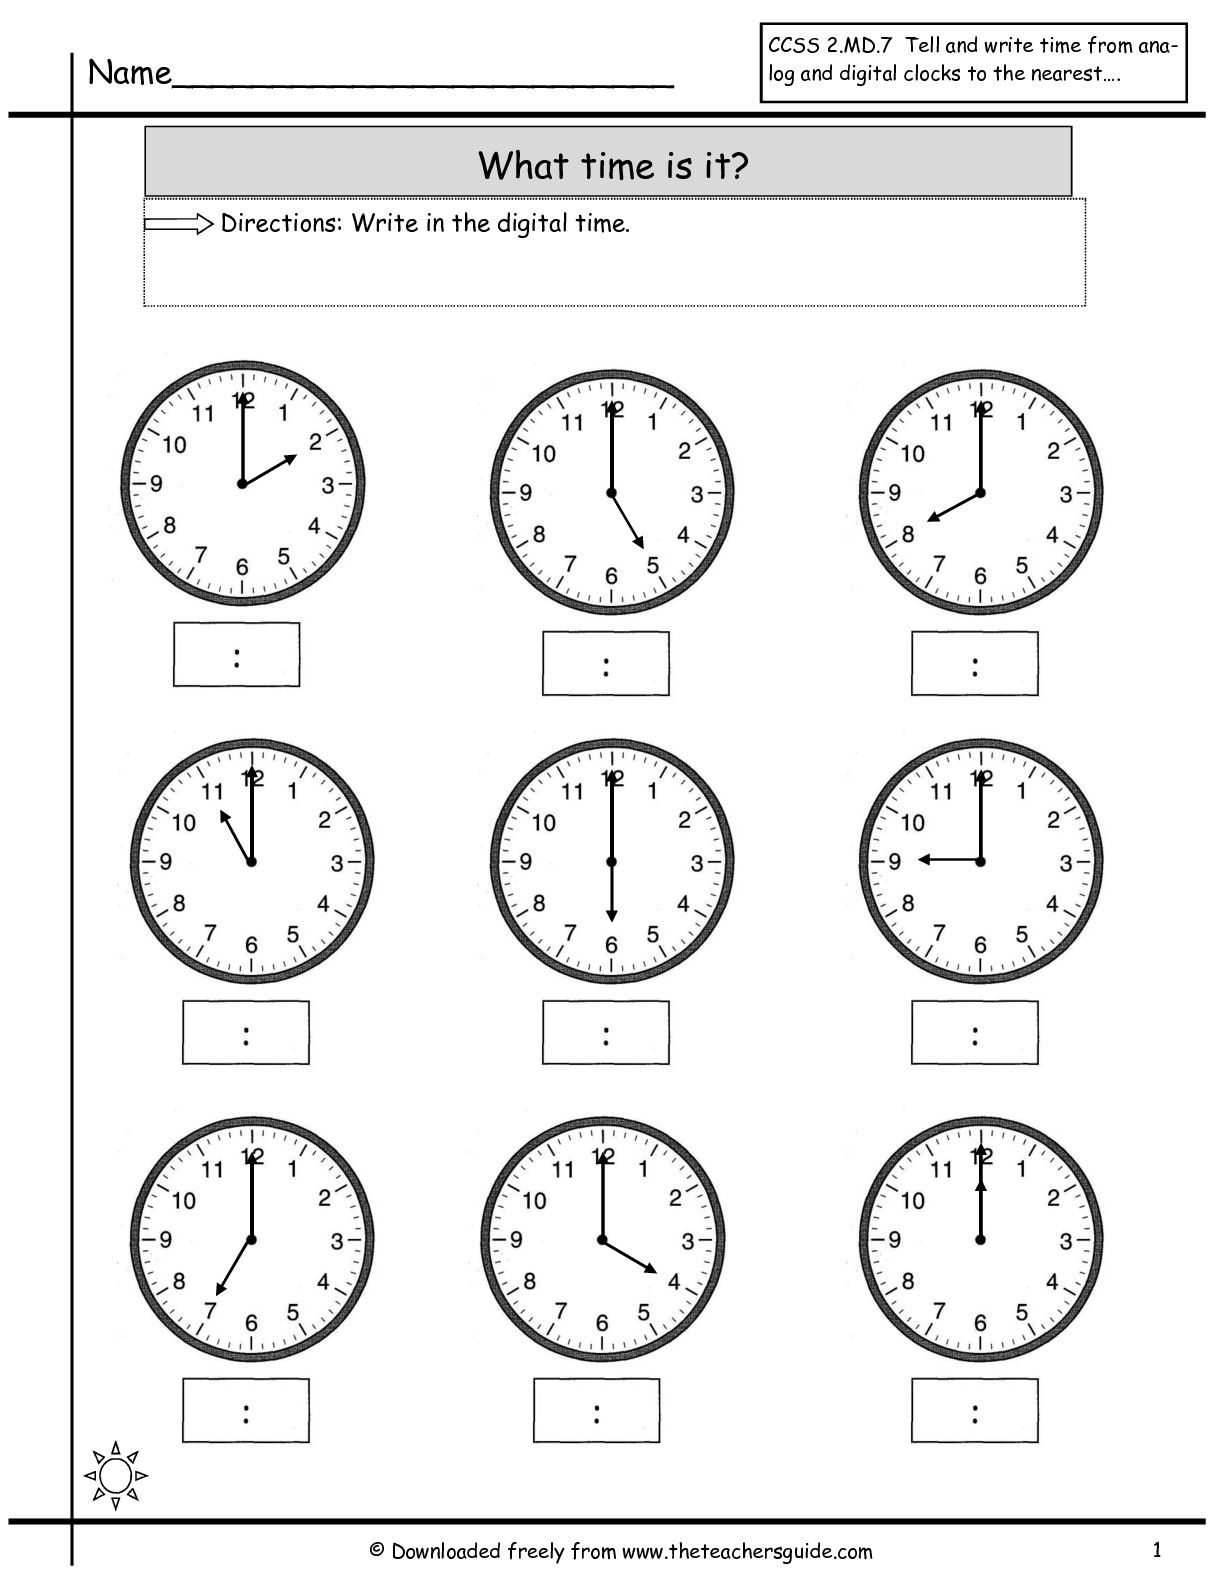 hight resolution of Telling Time Worksheets - O'clock And Half Past   2nd Grade on Worksheets  Ideas 5997